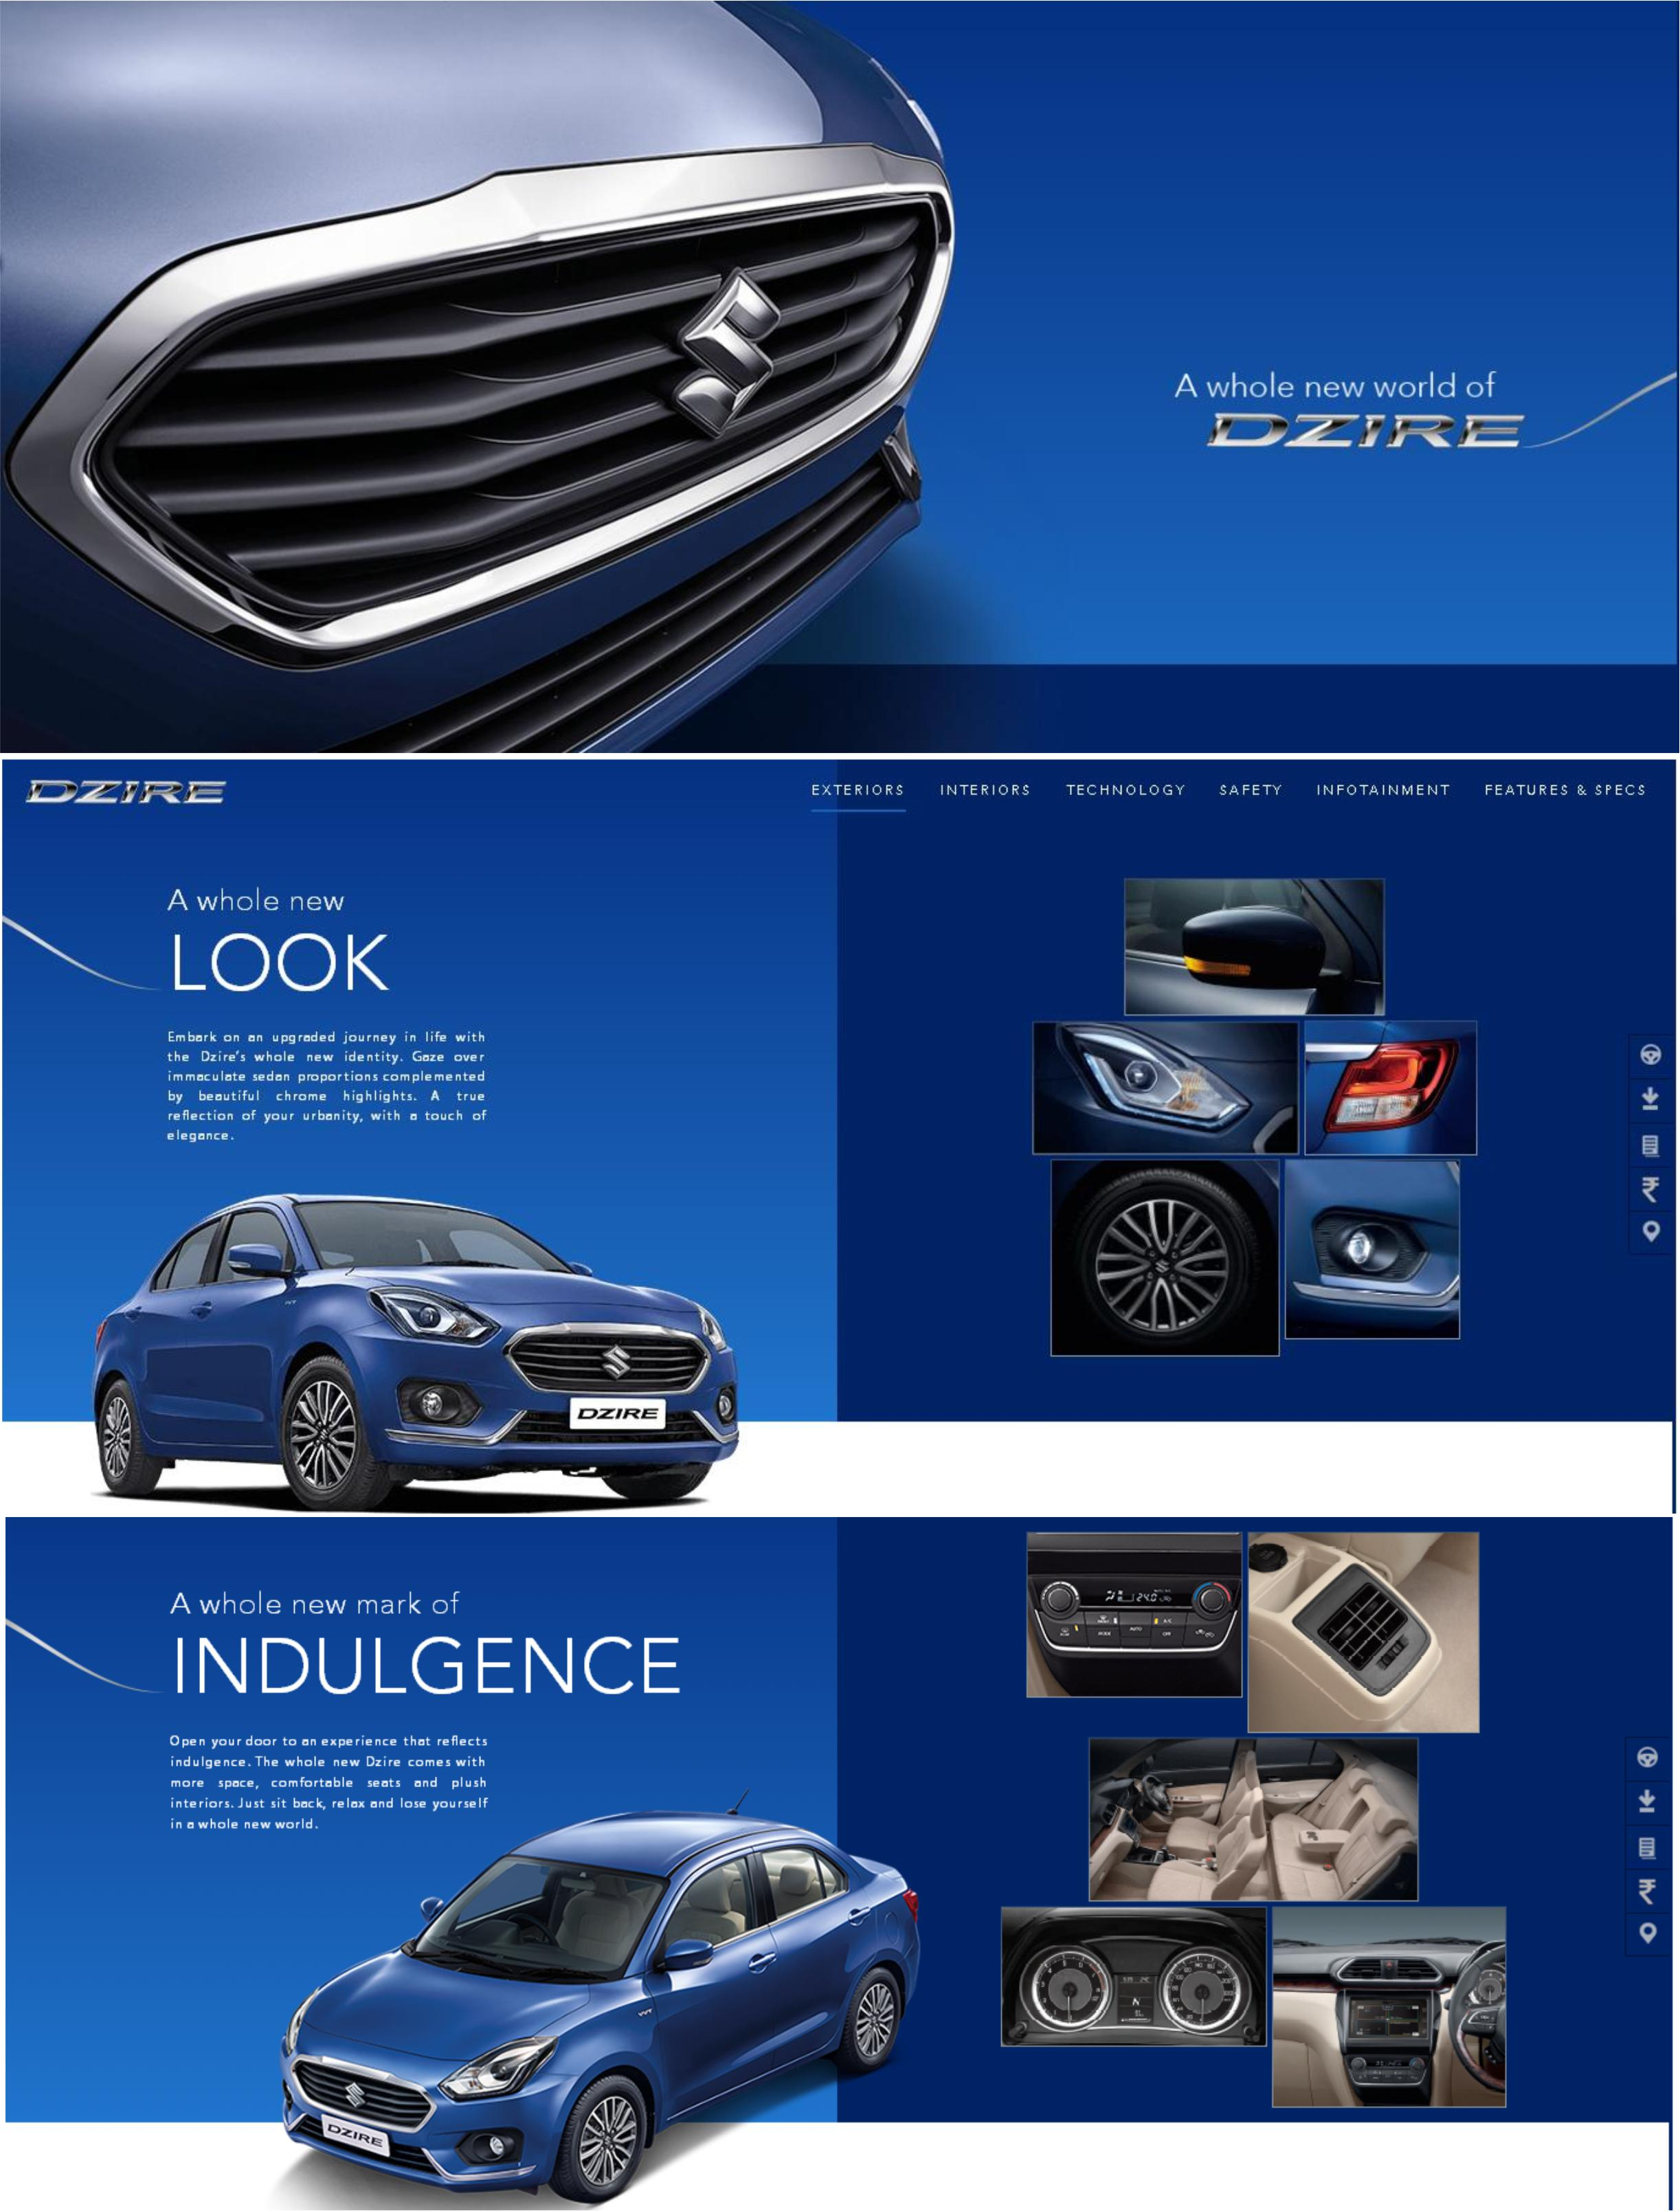 The Whole New World Of Dzire